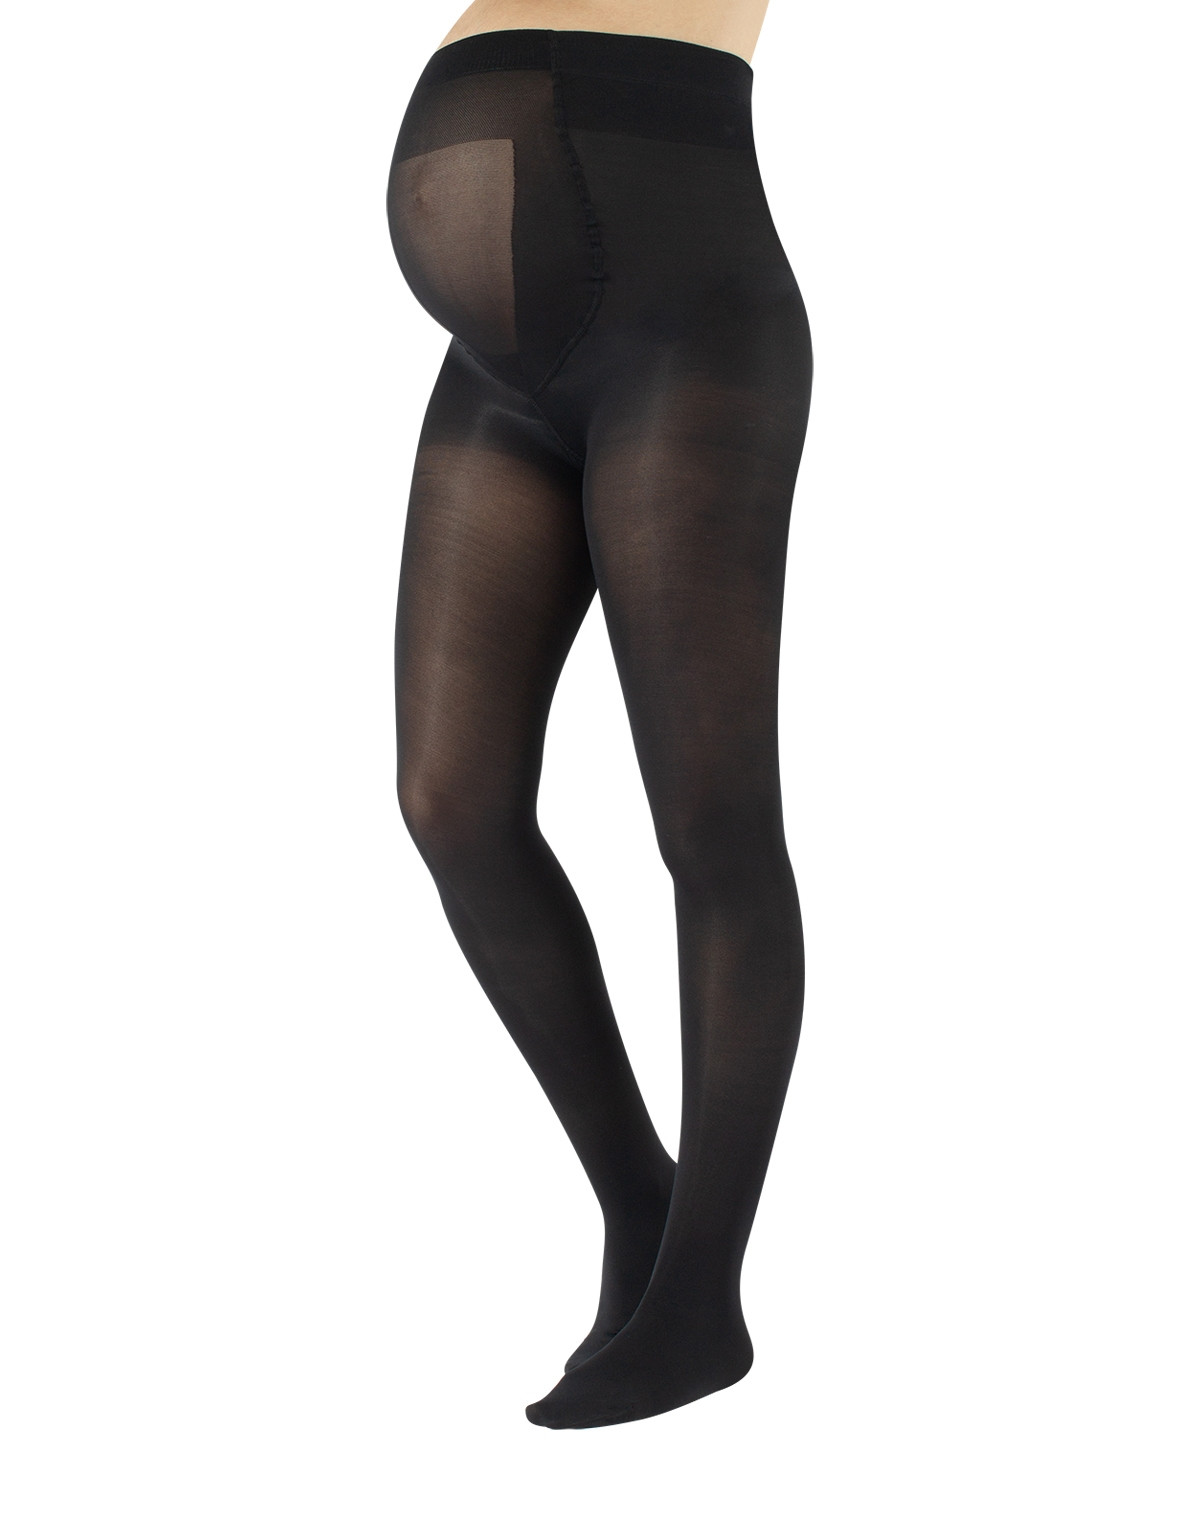 MATERNITY TIGHTS - 40 DEN